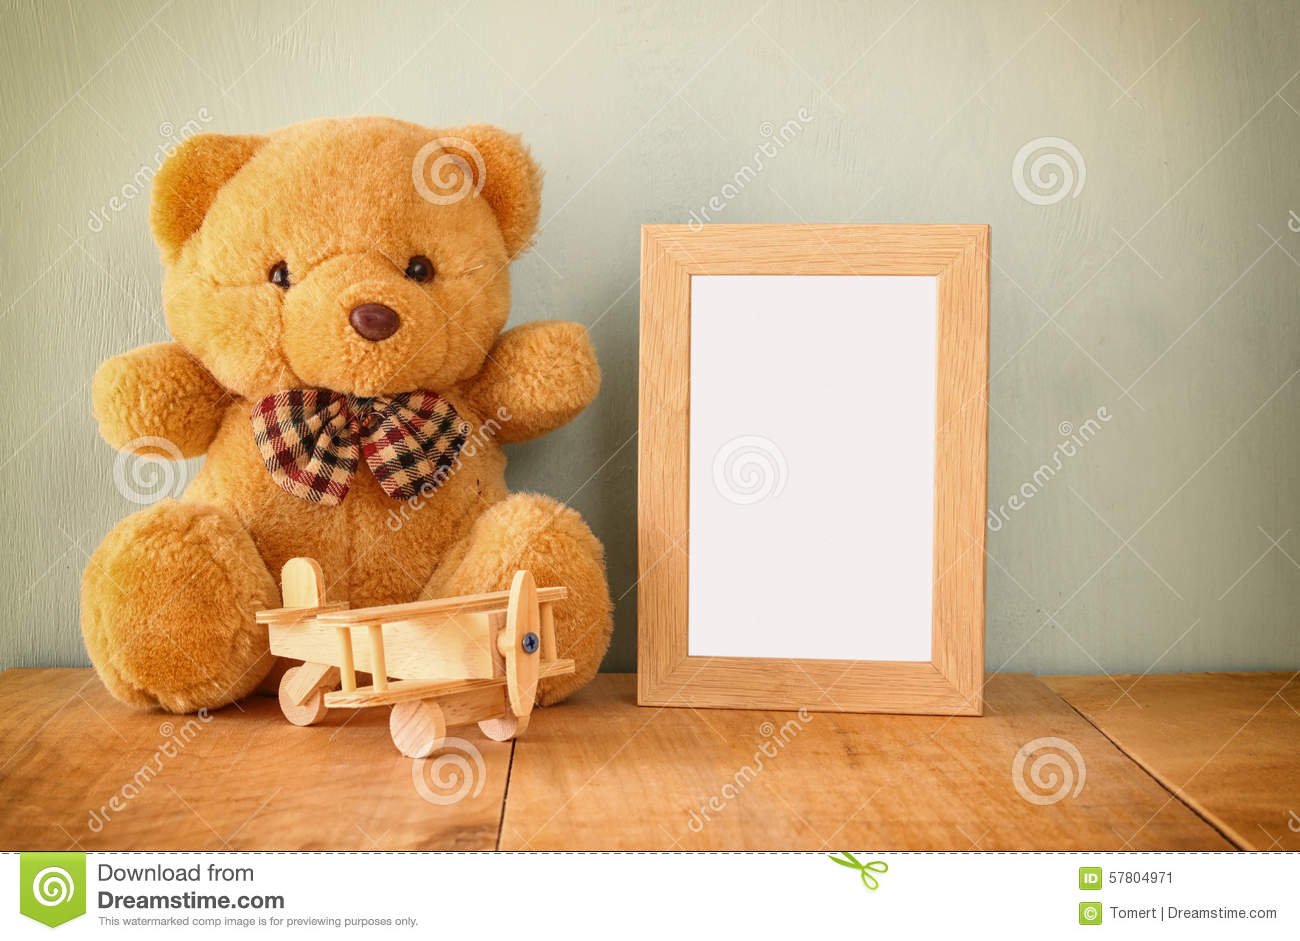 Wooden airplane toy and teddy bear over wood table next to blank photo frame. retro filtered image. ready to place photography